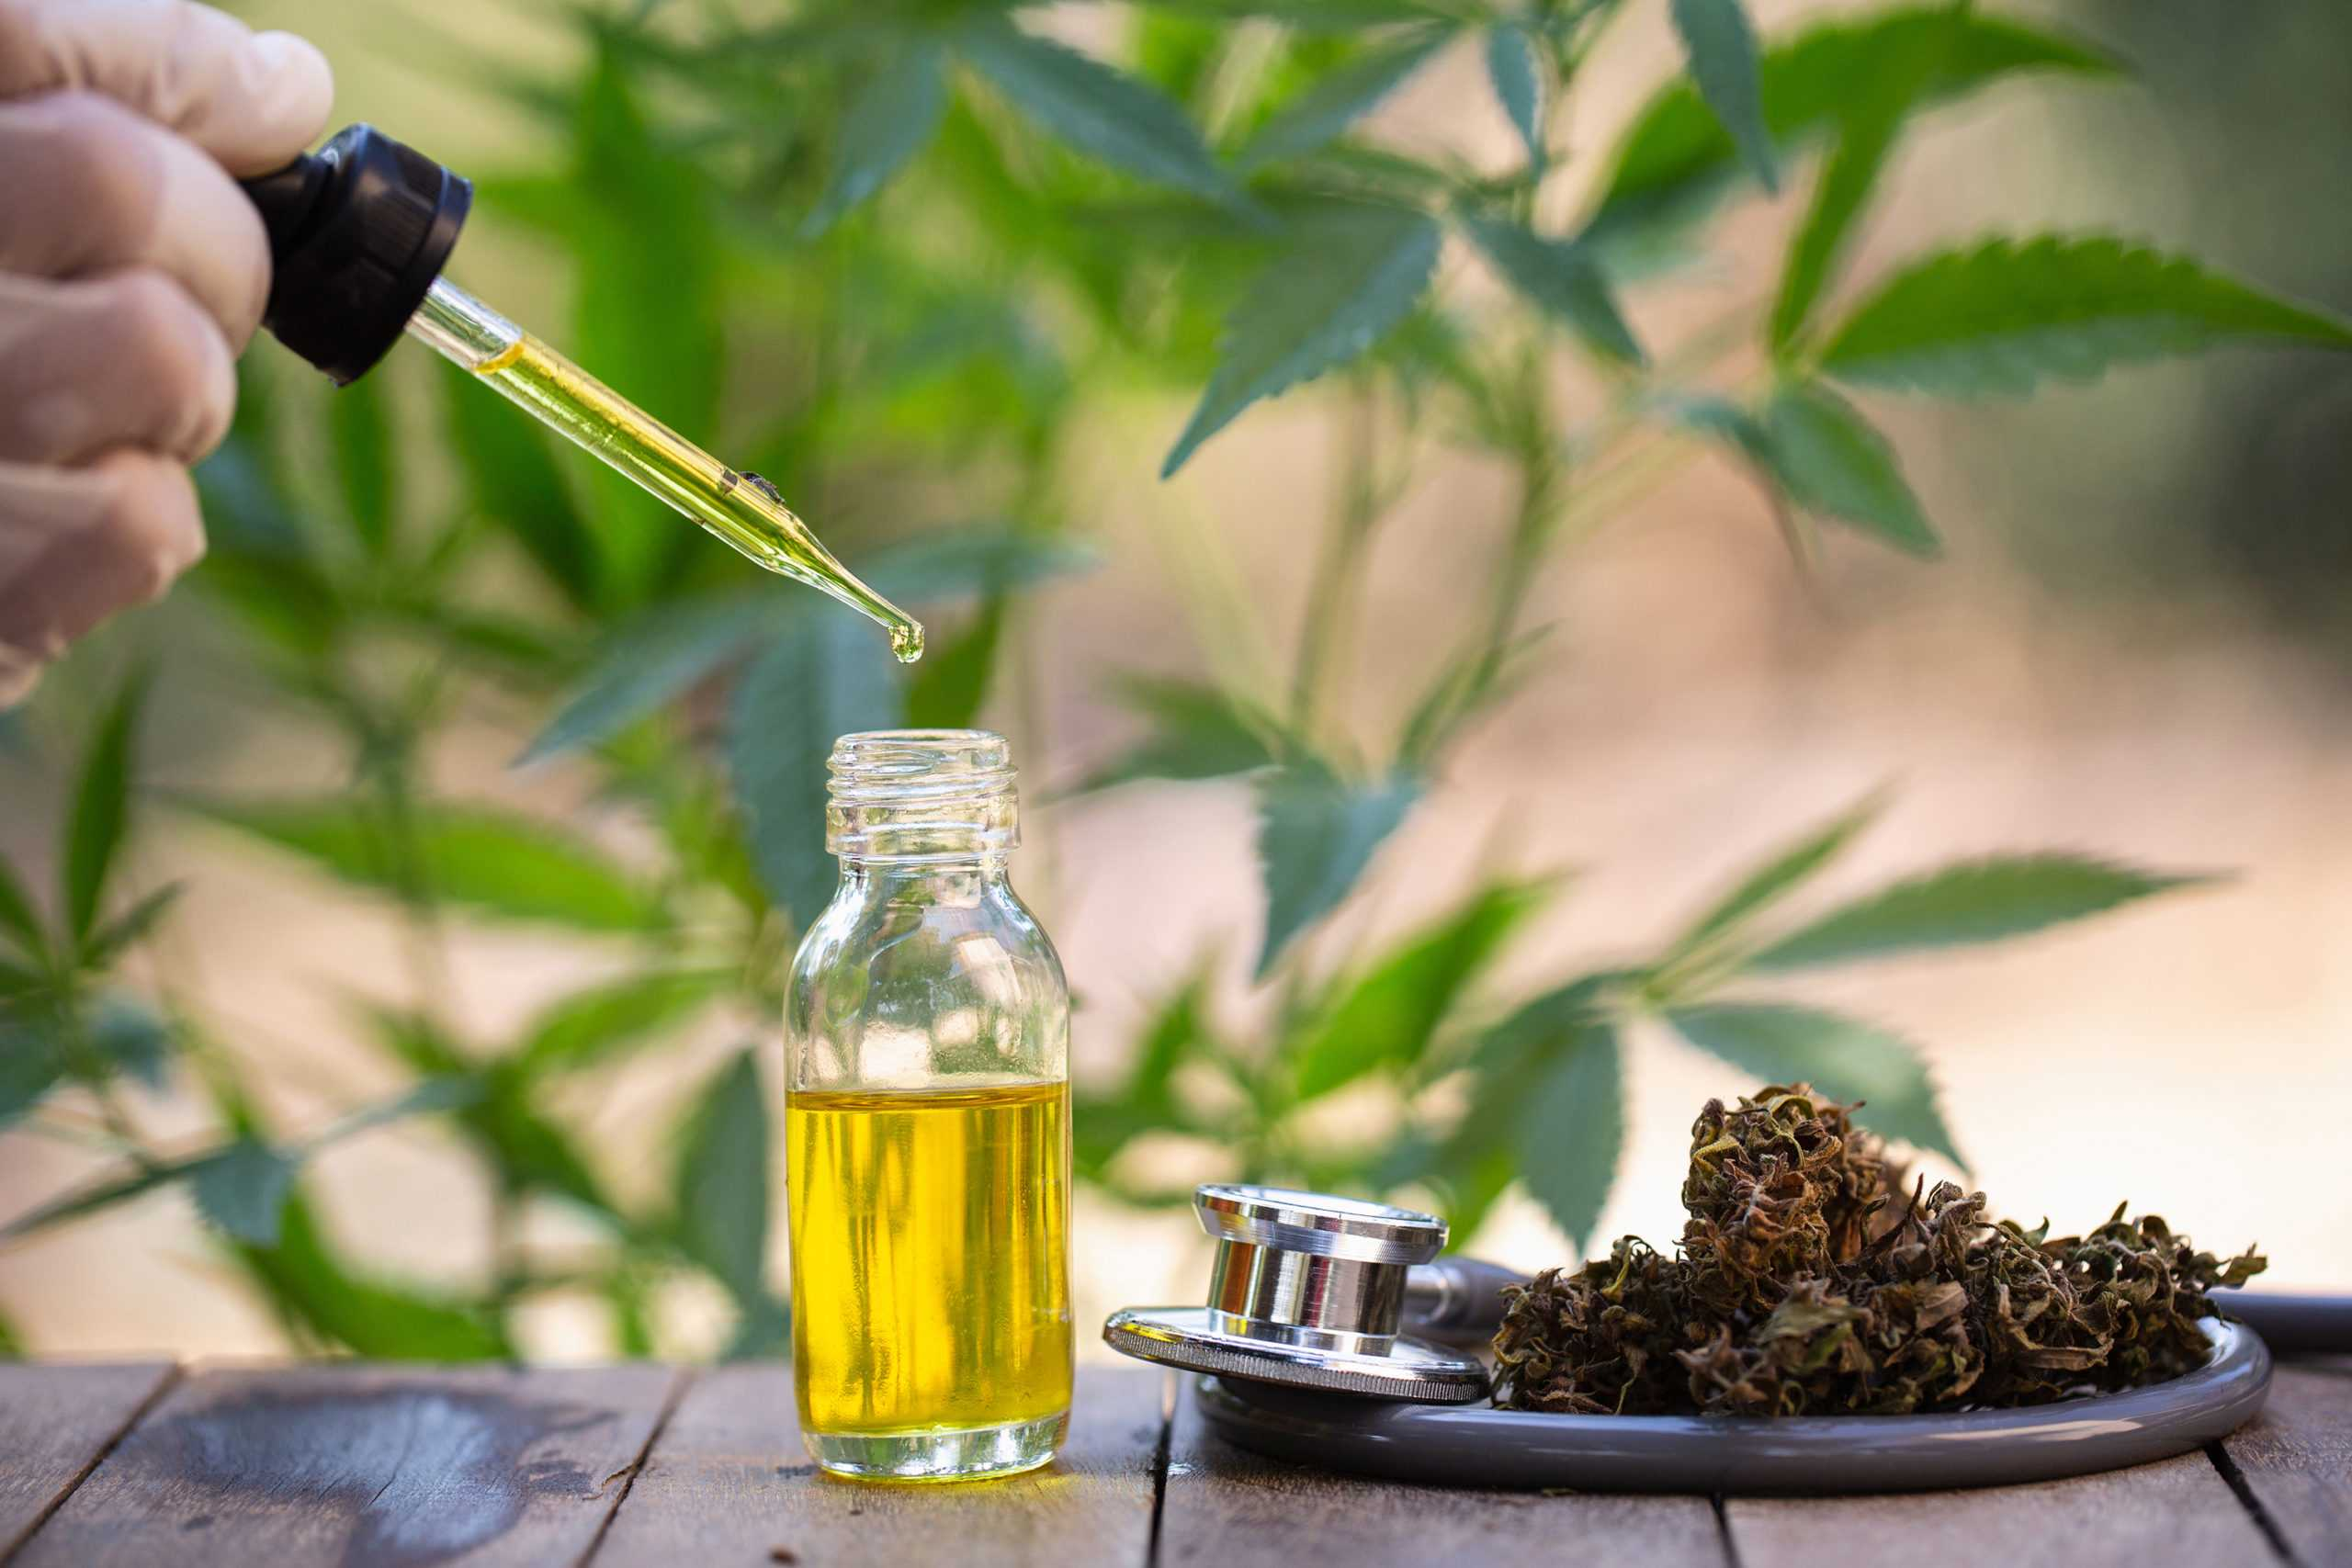 Organic CBD Oil from Hemp